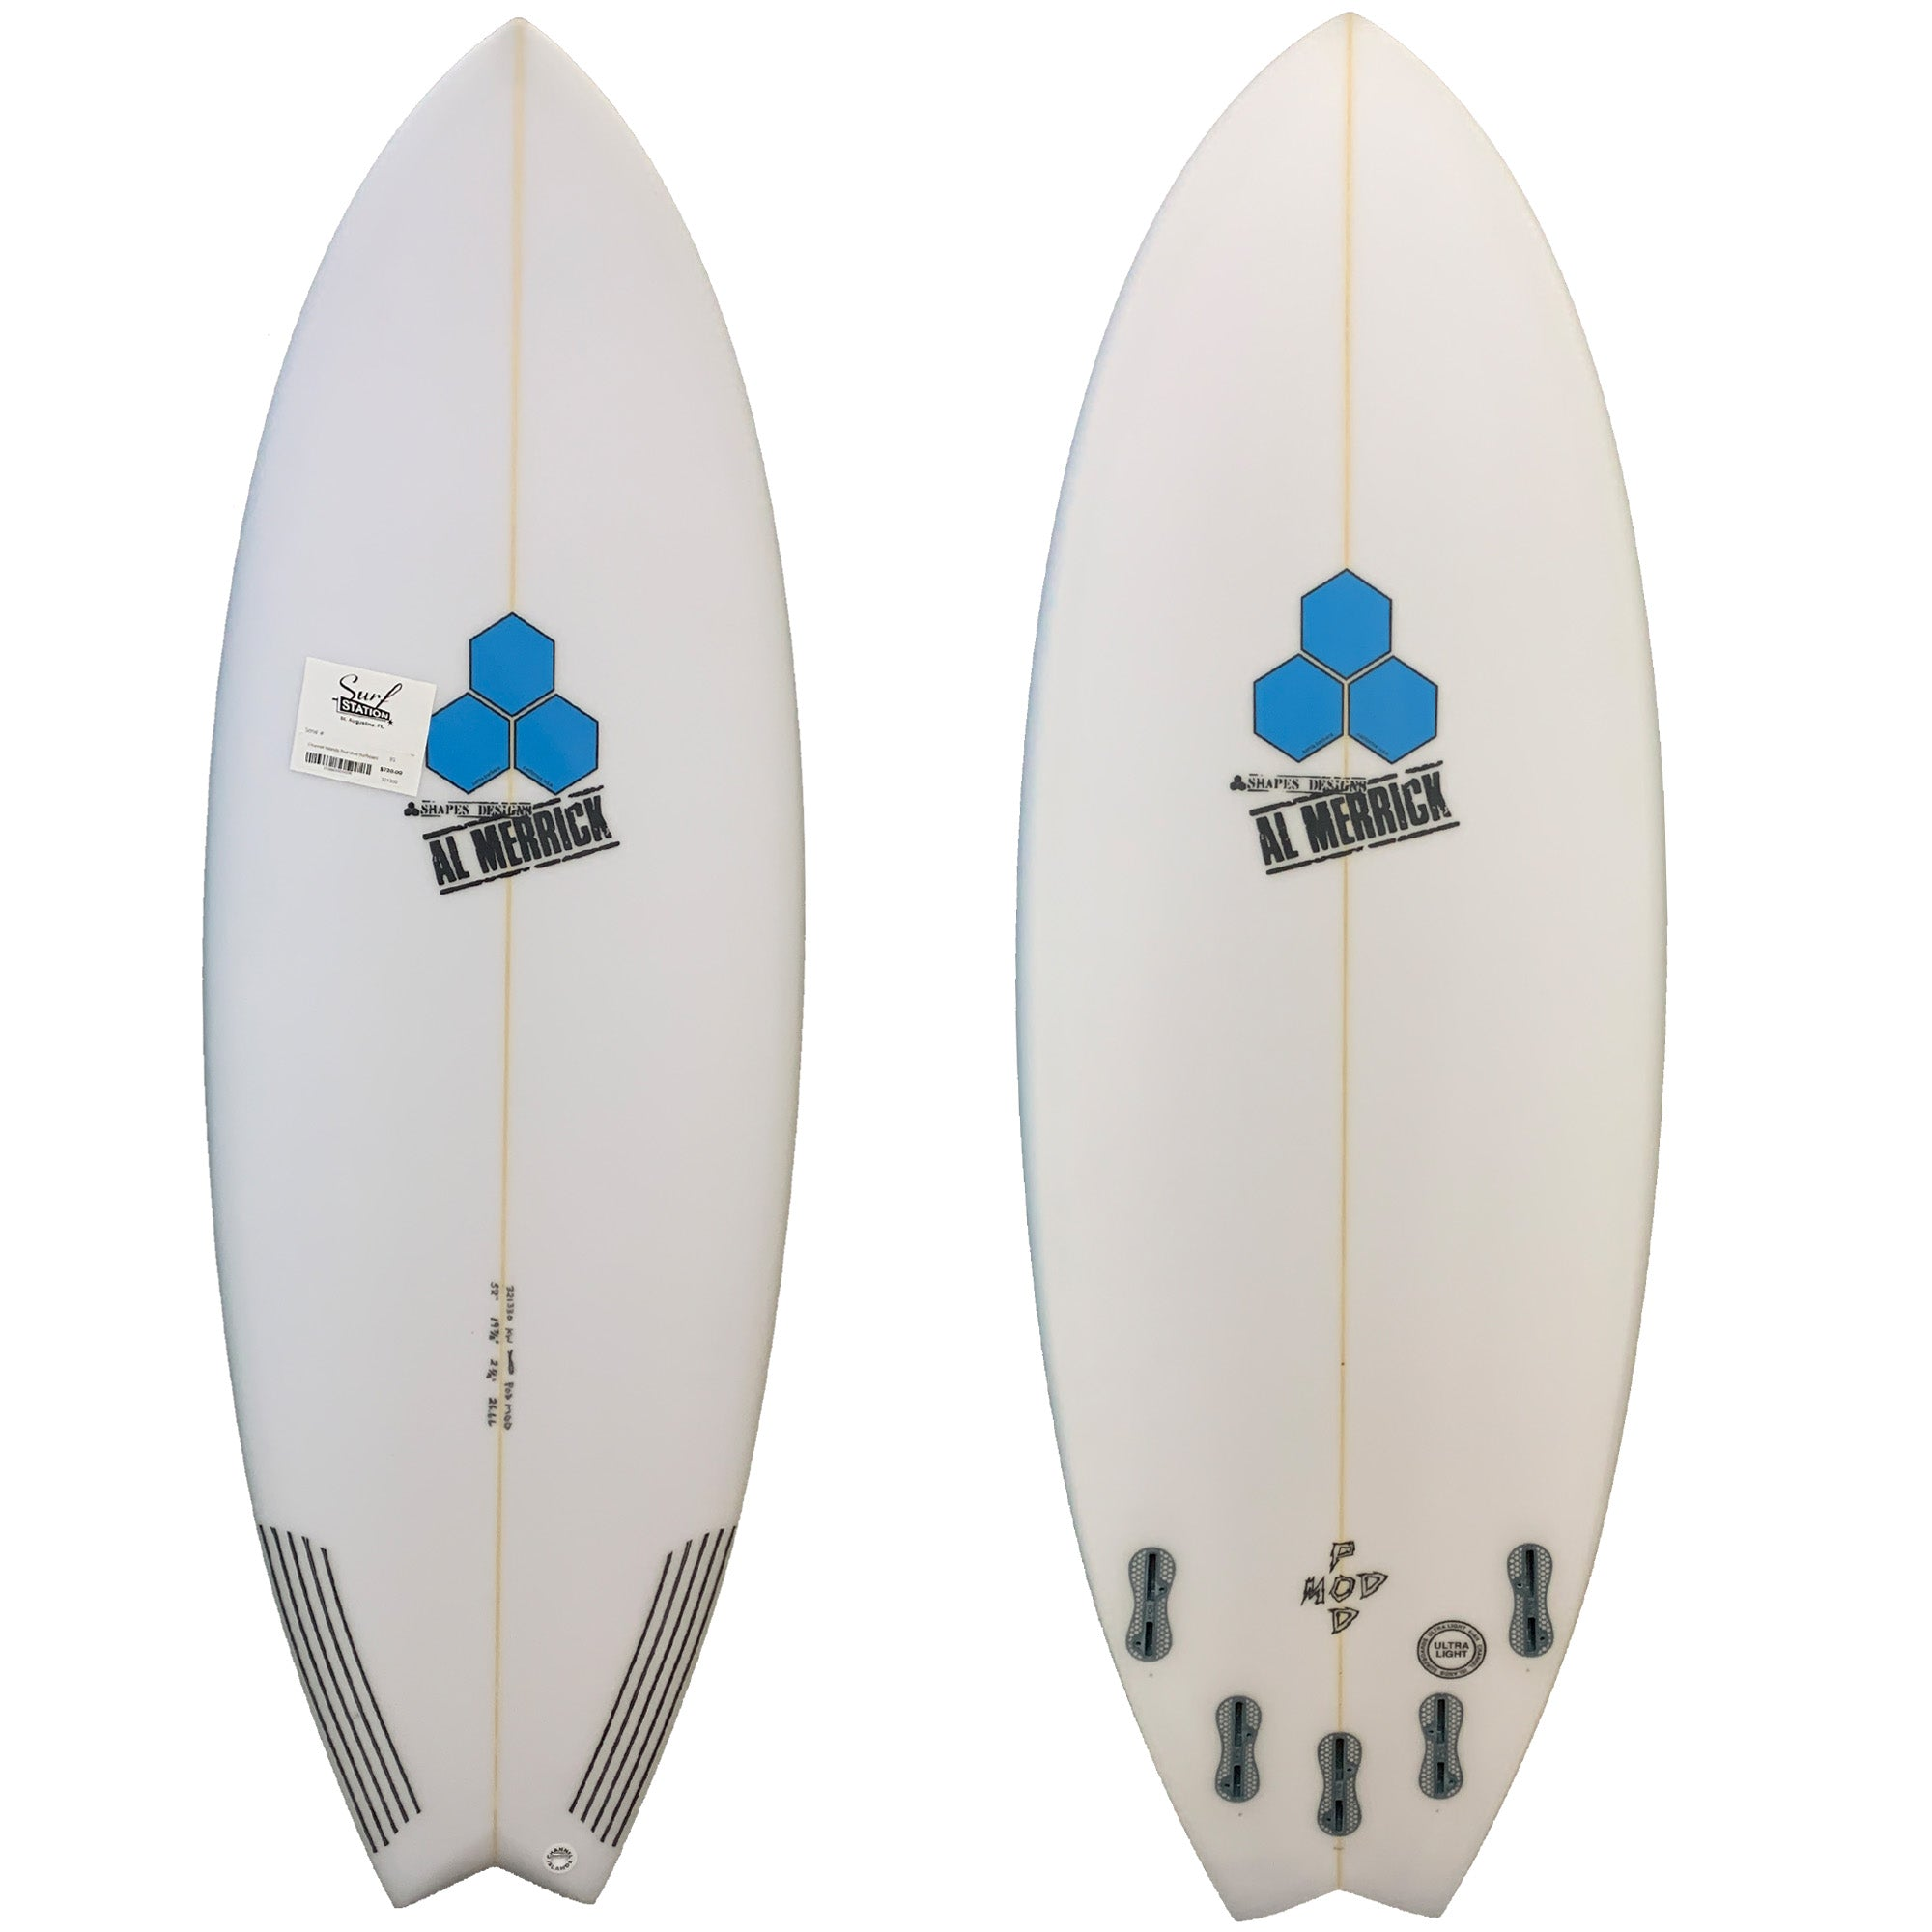 Channel Islands Pod Mod Surfboard - FCS II